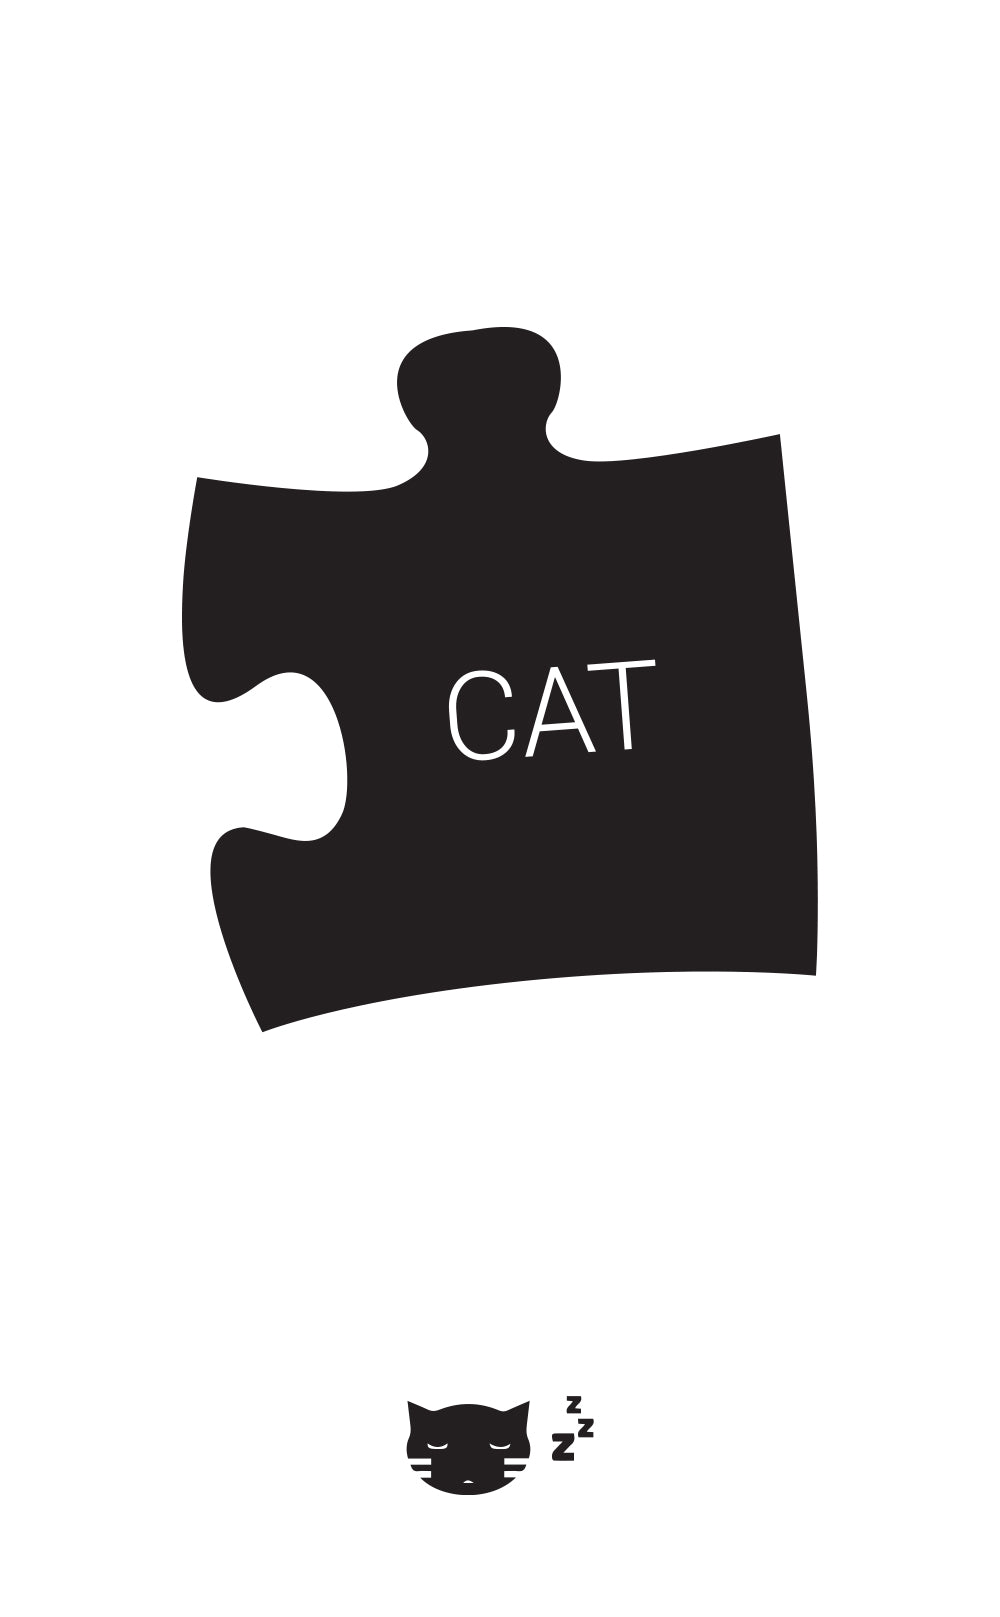 Black puzzle piece with 'cat' written on it